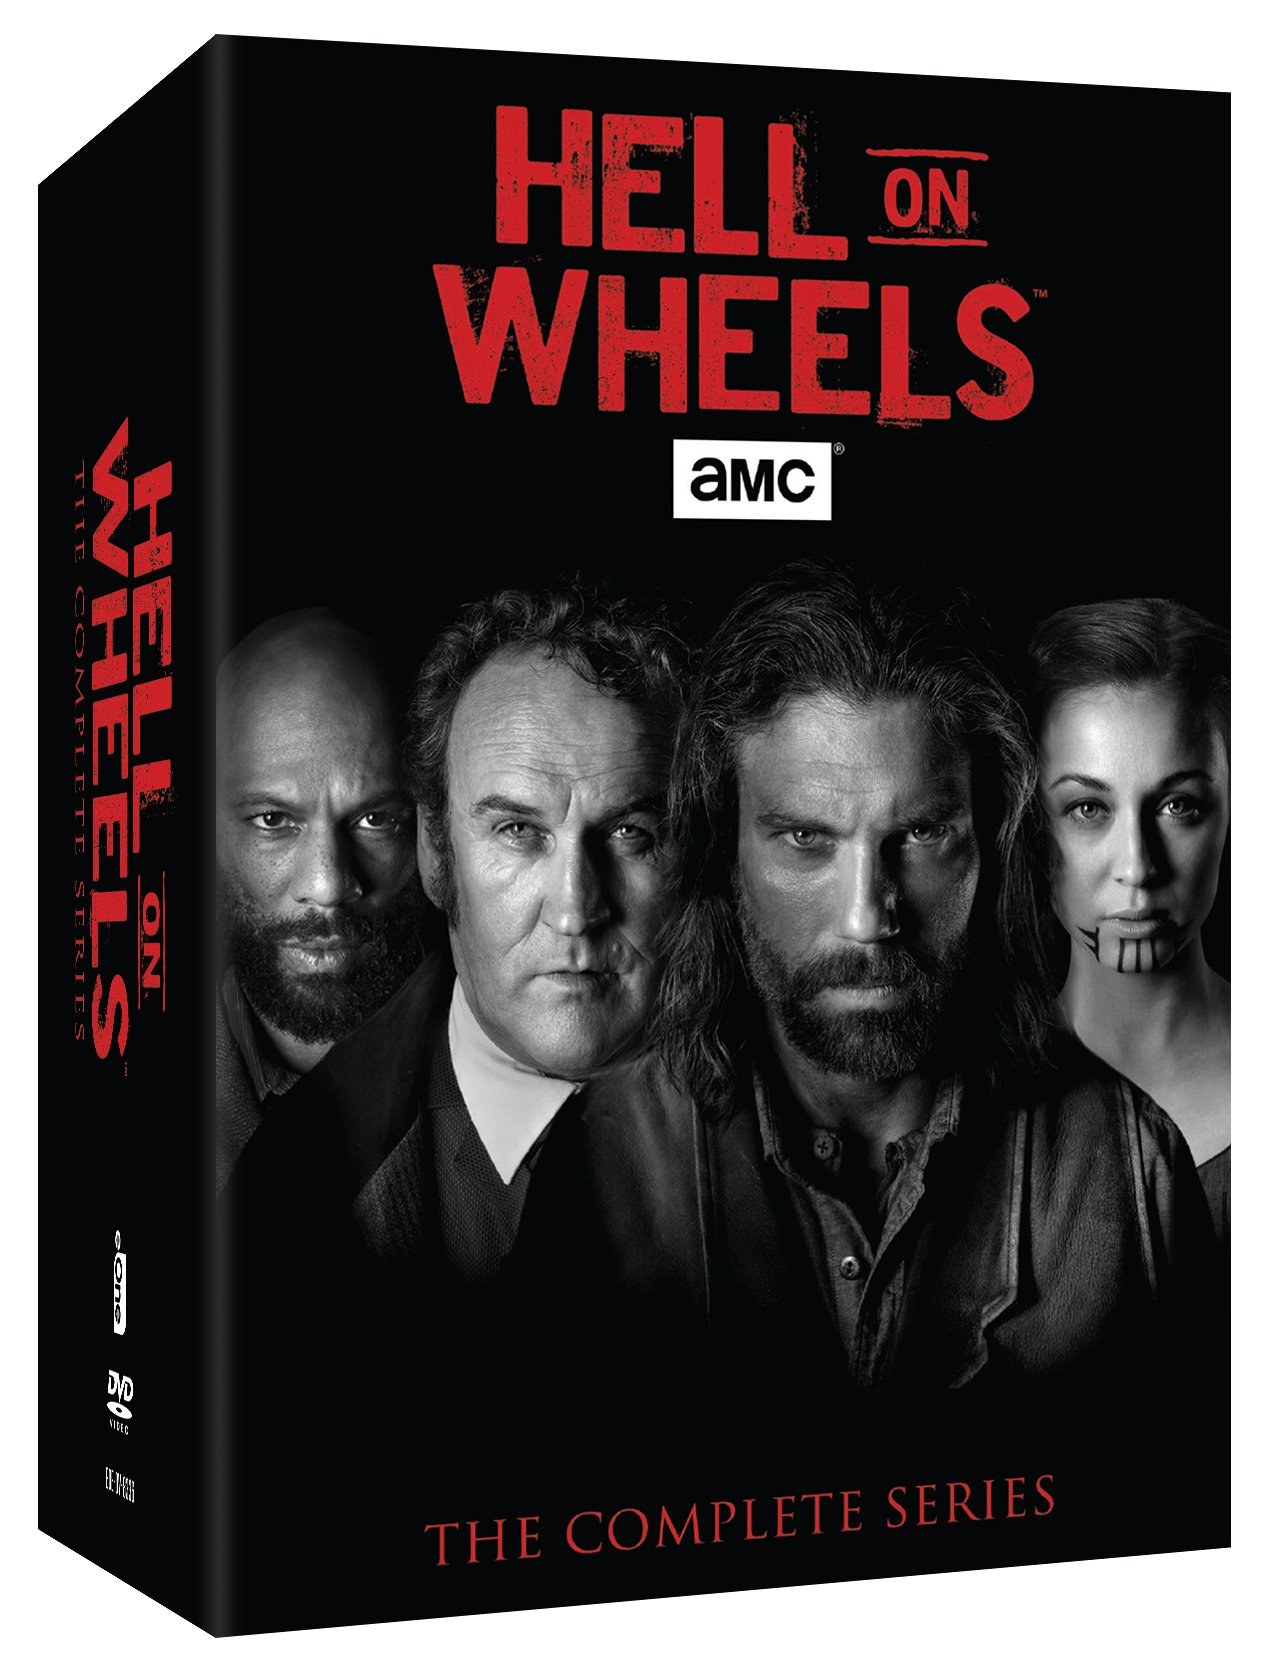 Hell on Wheels - The Complete Series by Koch Vision